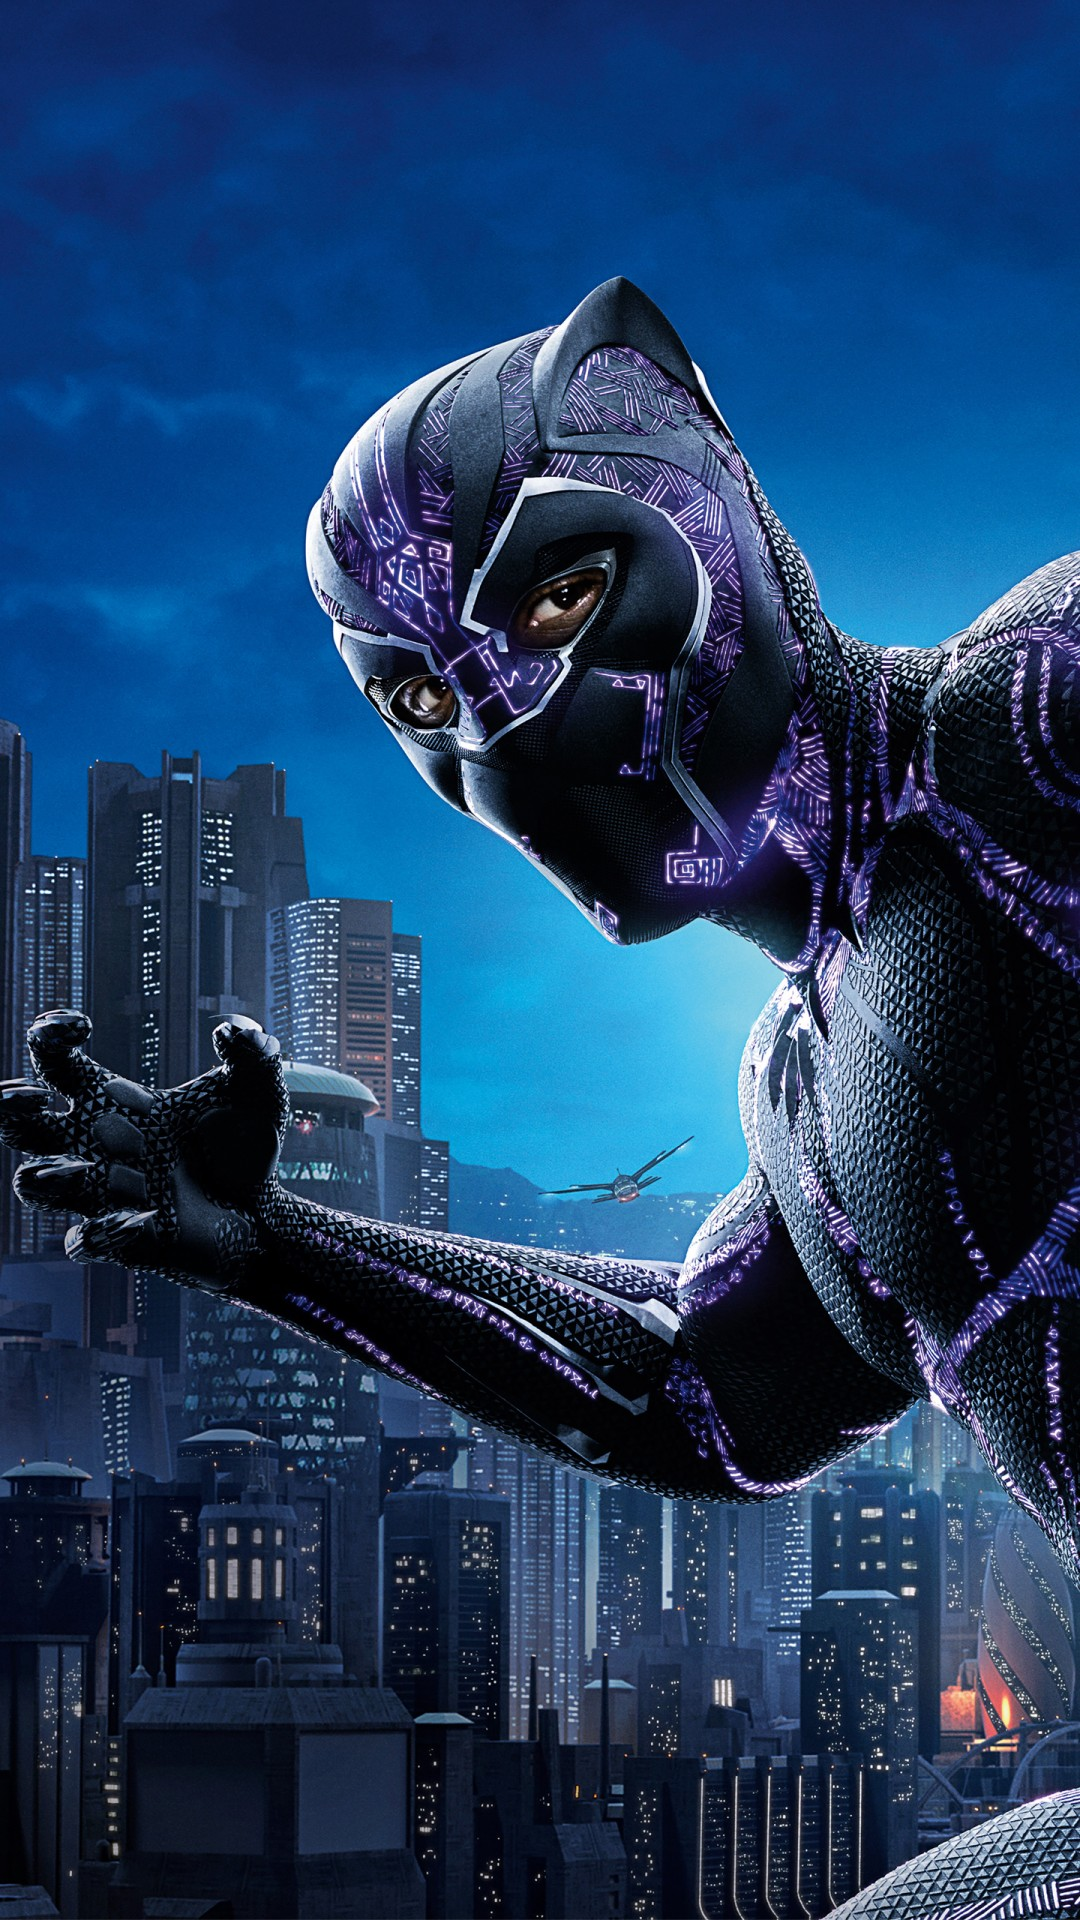 Marvel Iphone Wallpaper Hd Black Panther Movie 4k 8k Wallpapers Hd Wallpapers Id